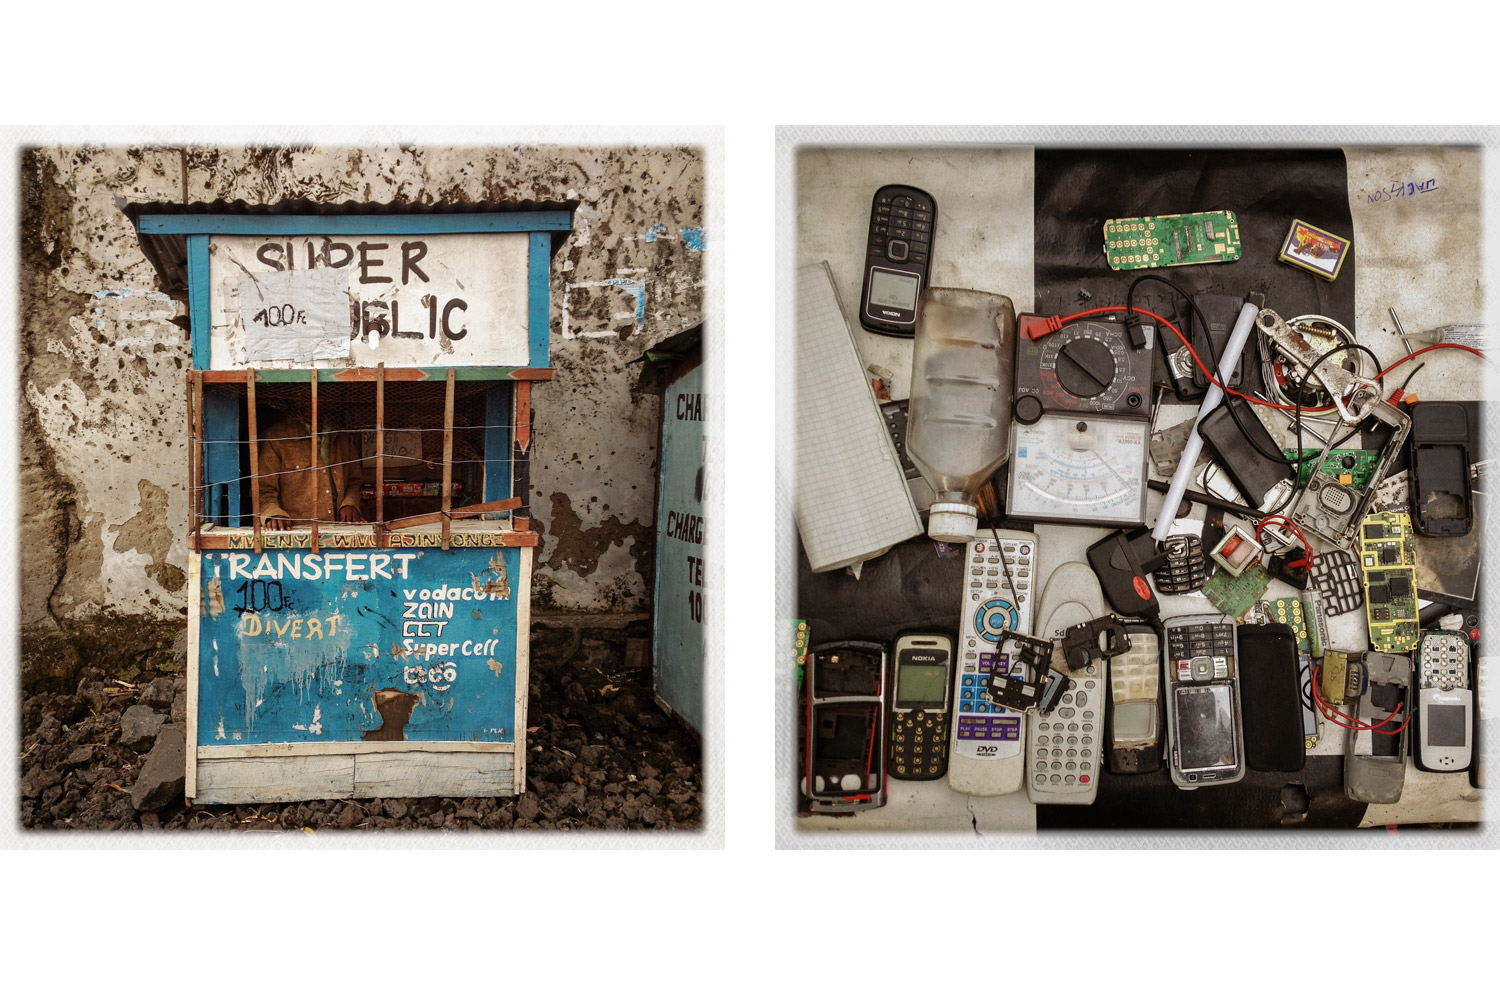 Mobile phone stands line many of the streets in Goma, as they do across the continent.